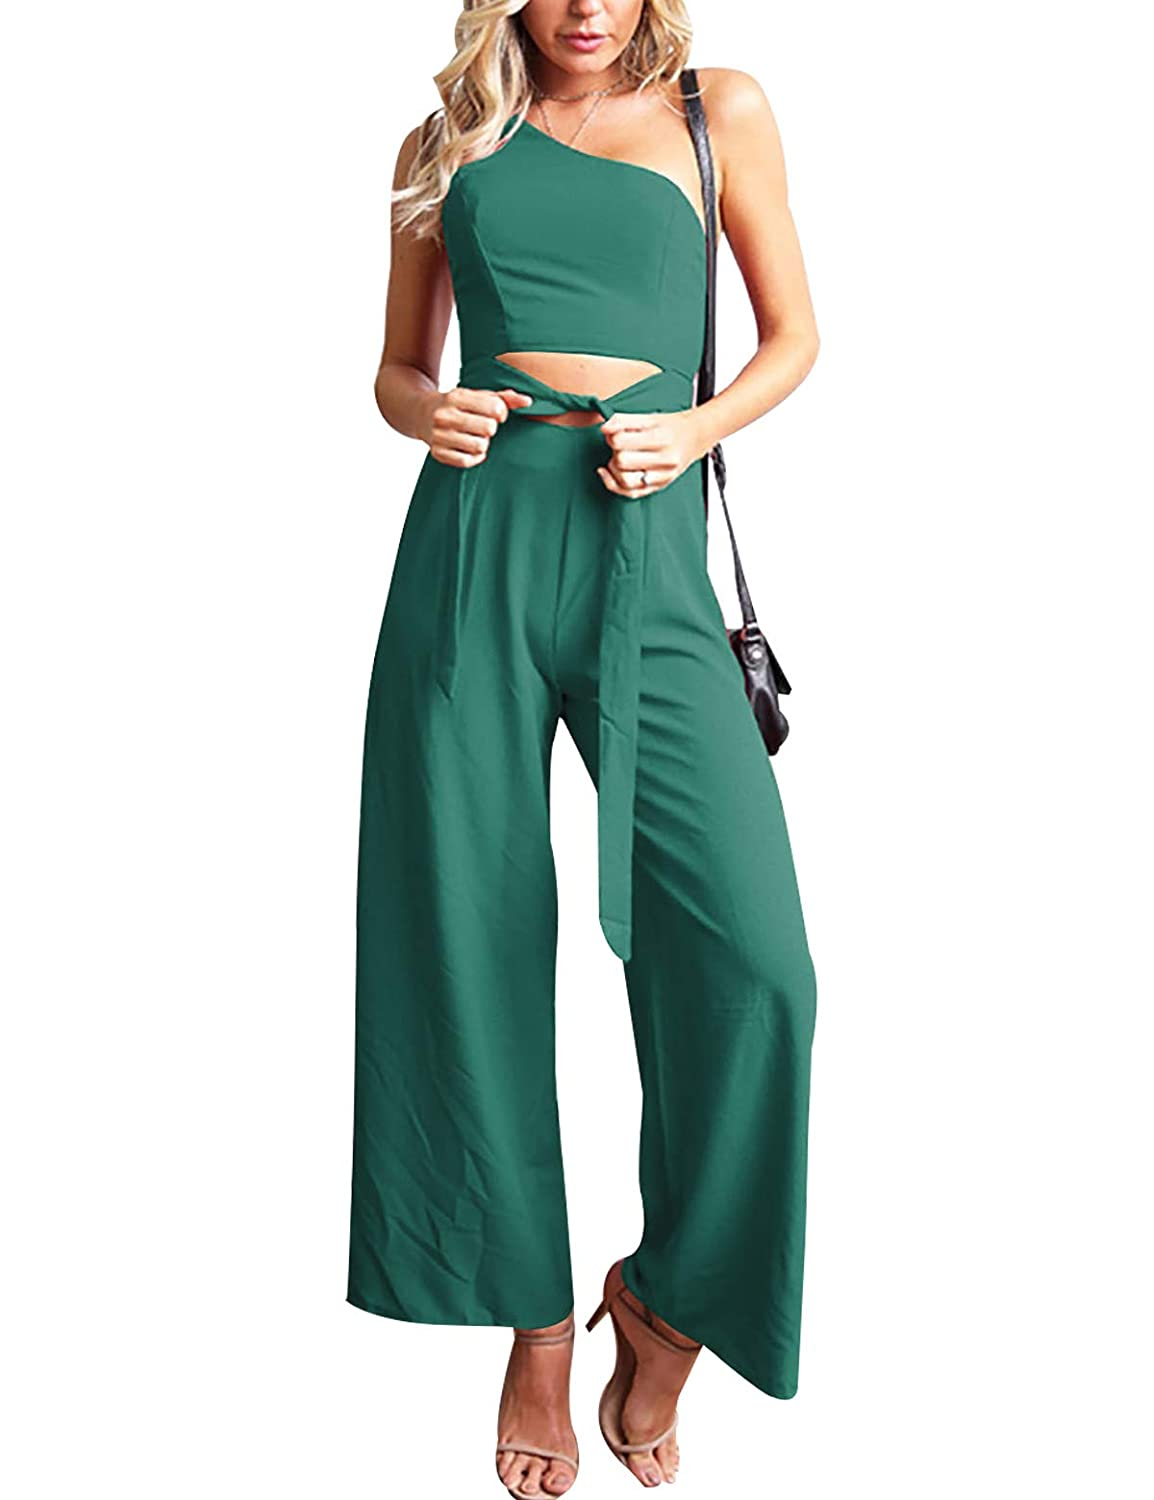 CXINS Womens Solid Color Elegant Sleeveless One Shoulder Cut Out Jumpsuits High Waist Romper with Belt